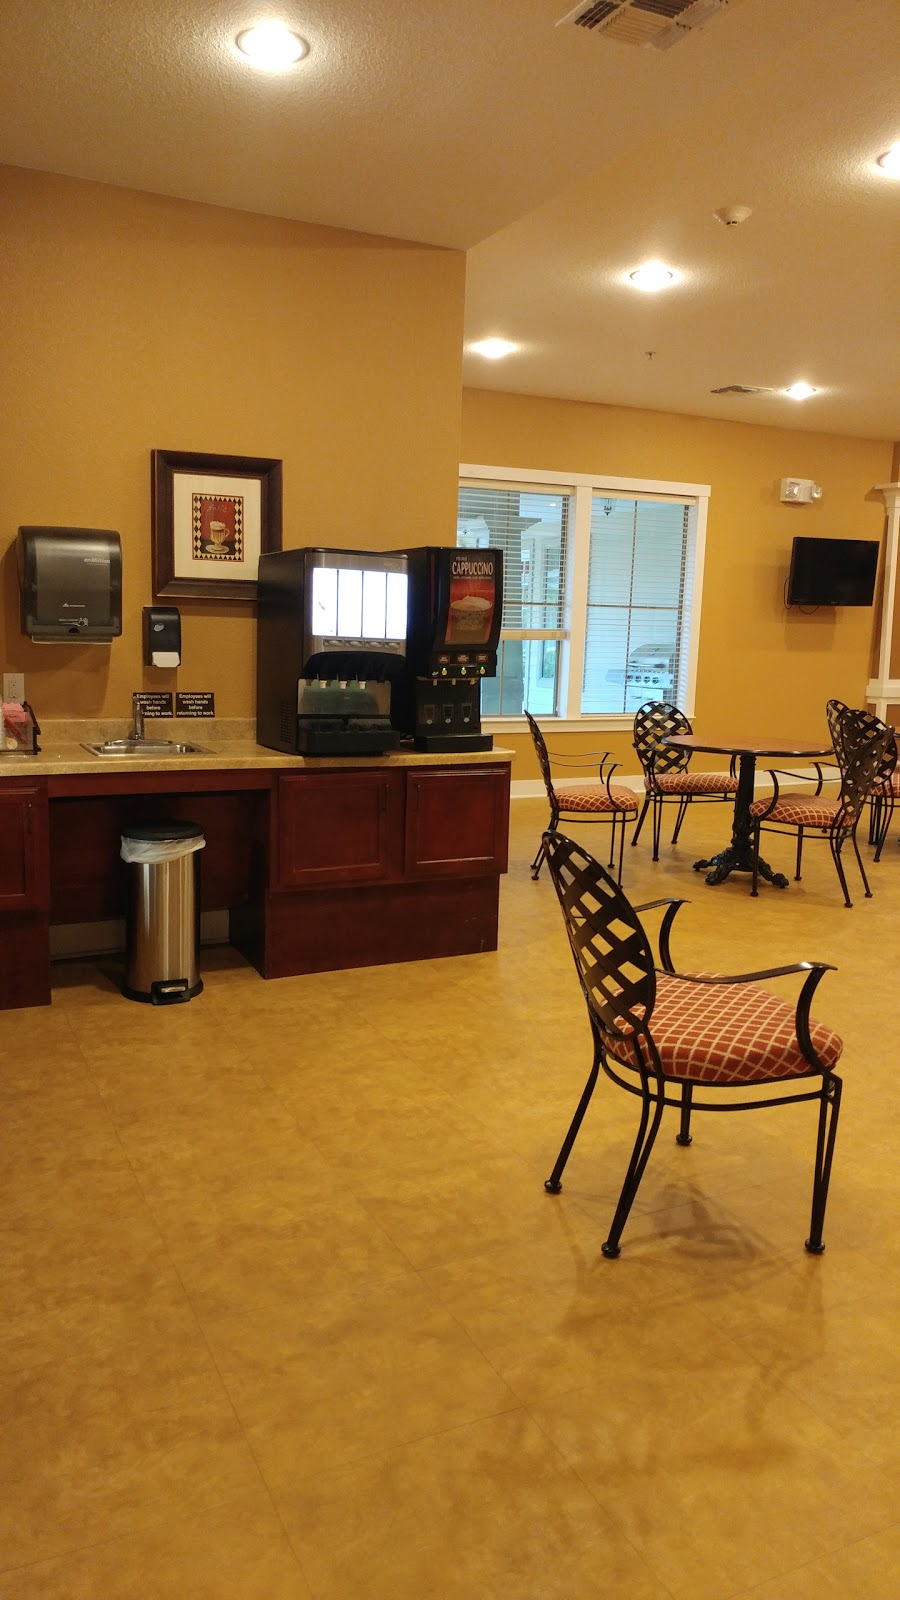 River Oaks Assisted Living - health  | Photo 4 of 4 | Address: 1530 E Sandy Lake Rd, Coppell, TX 75019, USA | Phone: (469) 240-1624